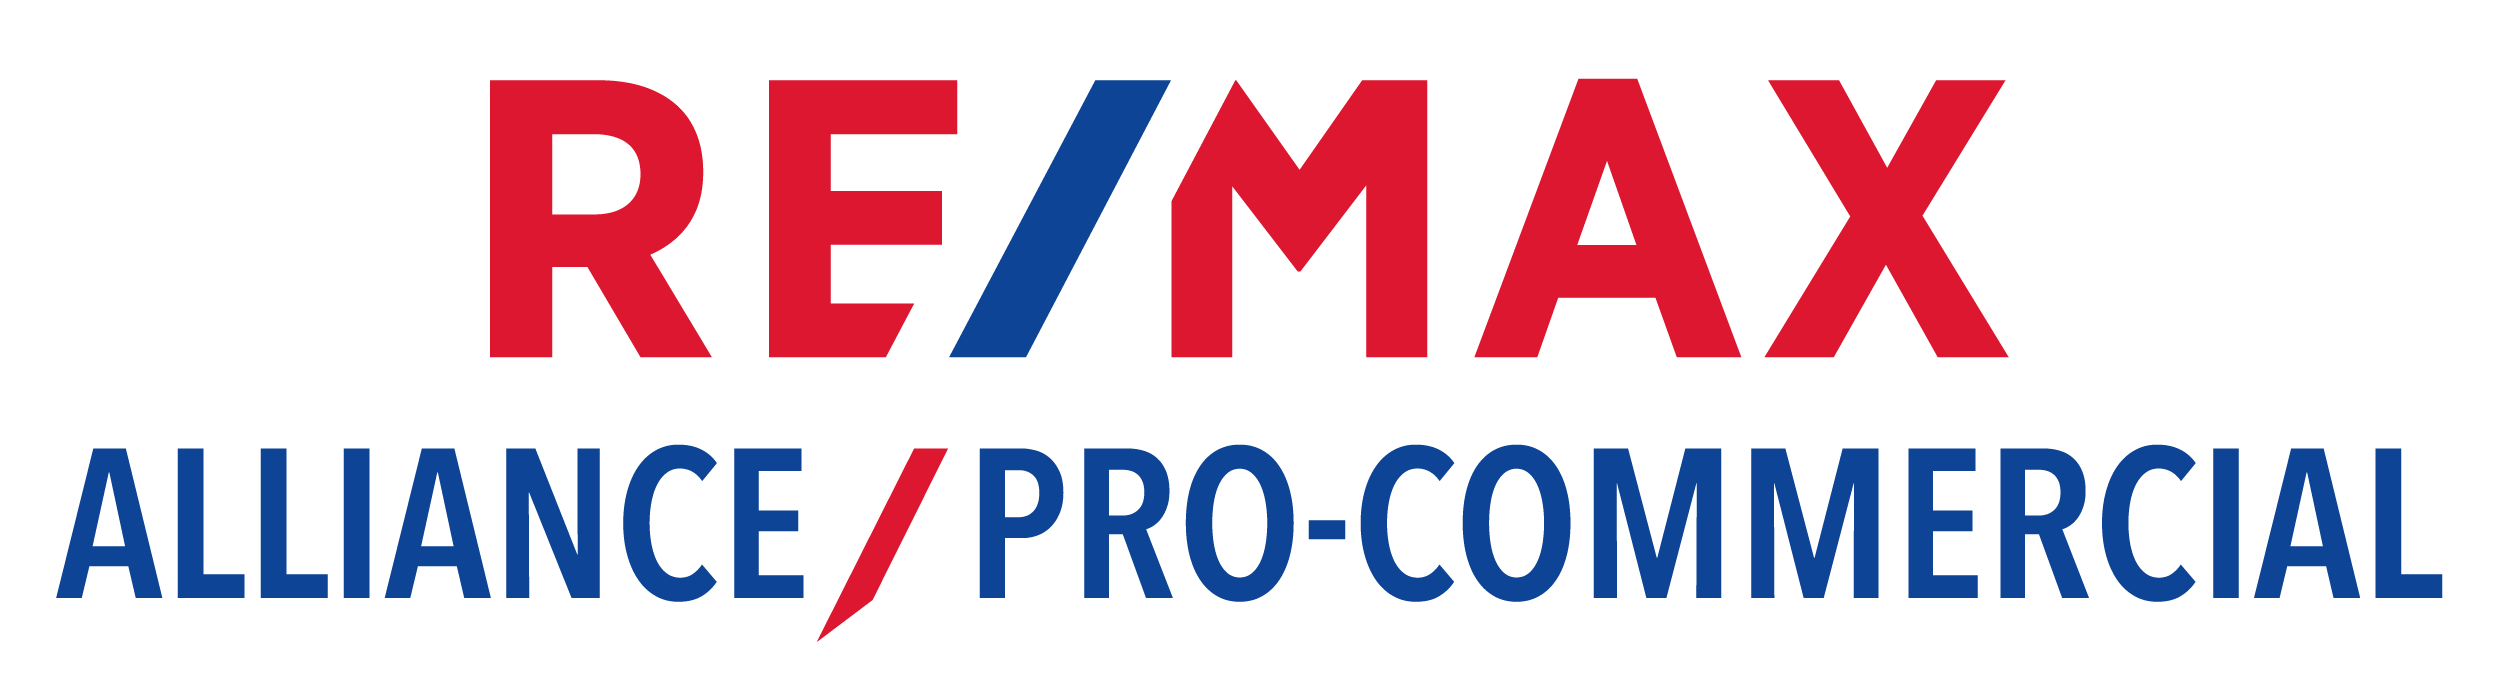 RE/MAX Alliance, Ambiance & Pro-Commercial